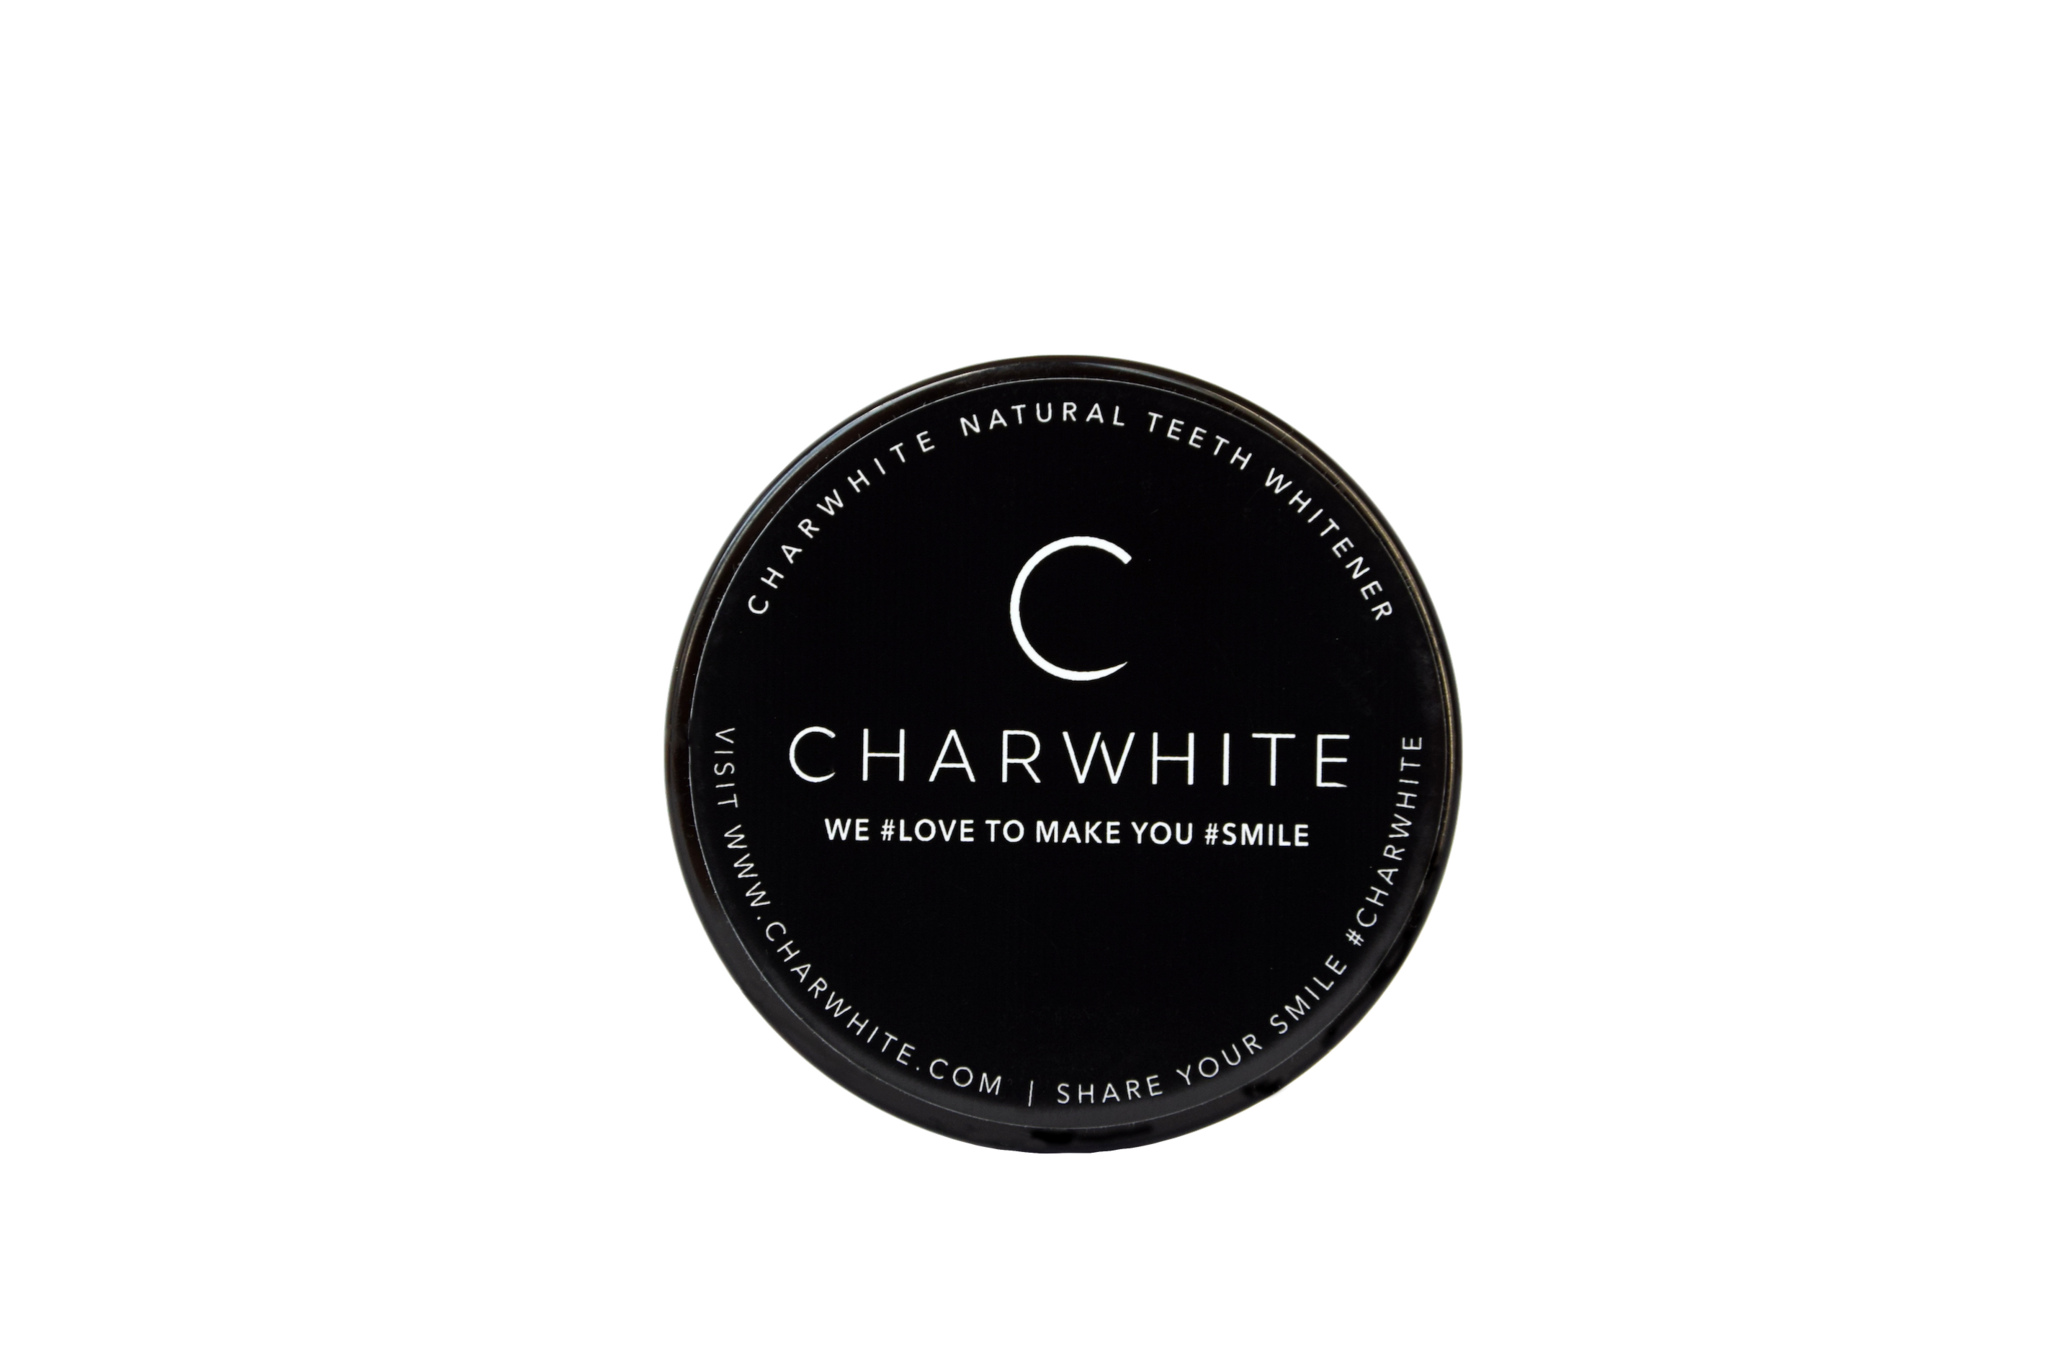 CHARWHITE Natural Teeth Whitener - WE LOVE TO MAKE YOU SMILE.